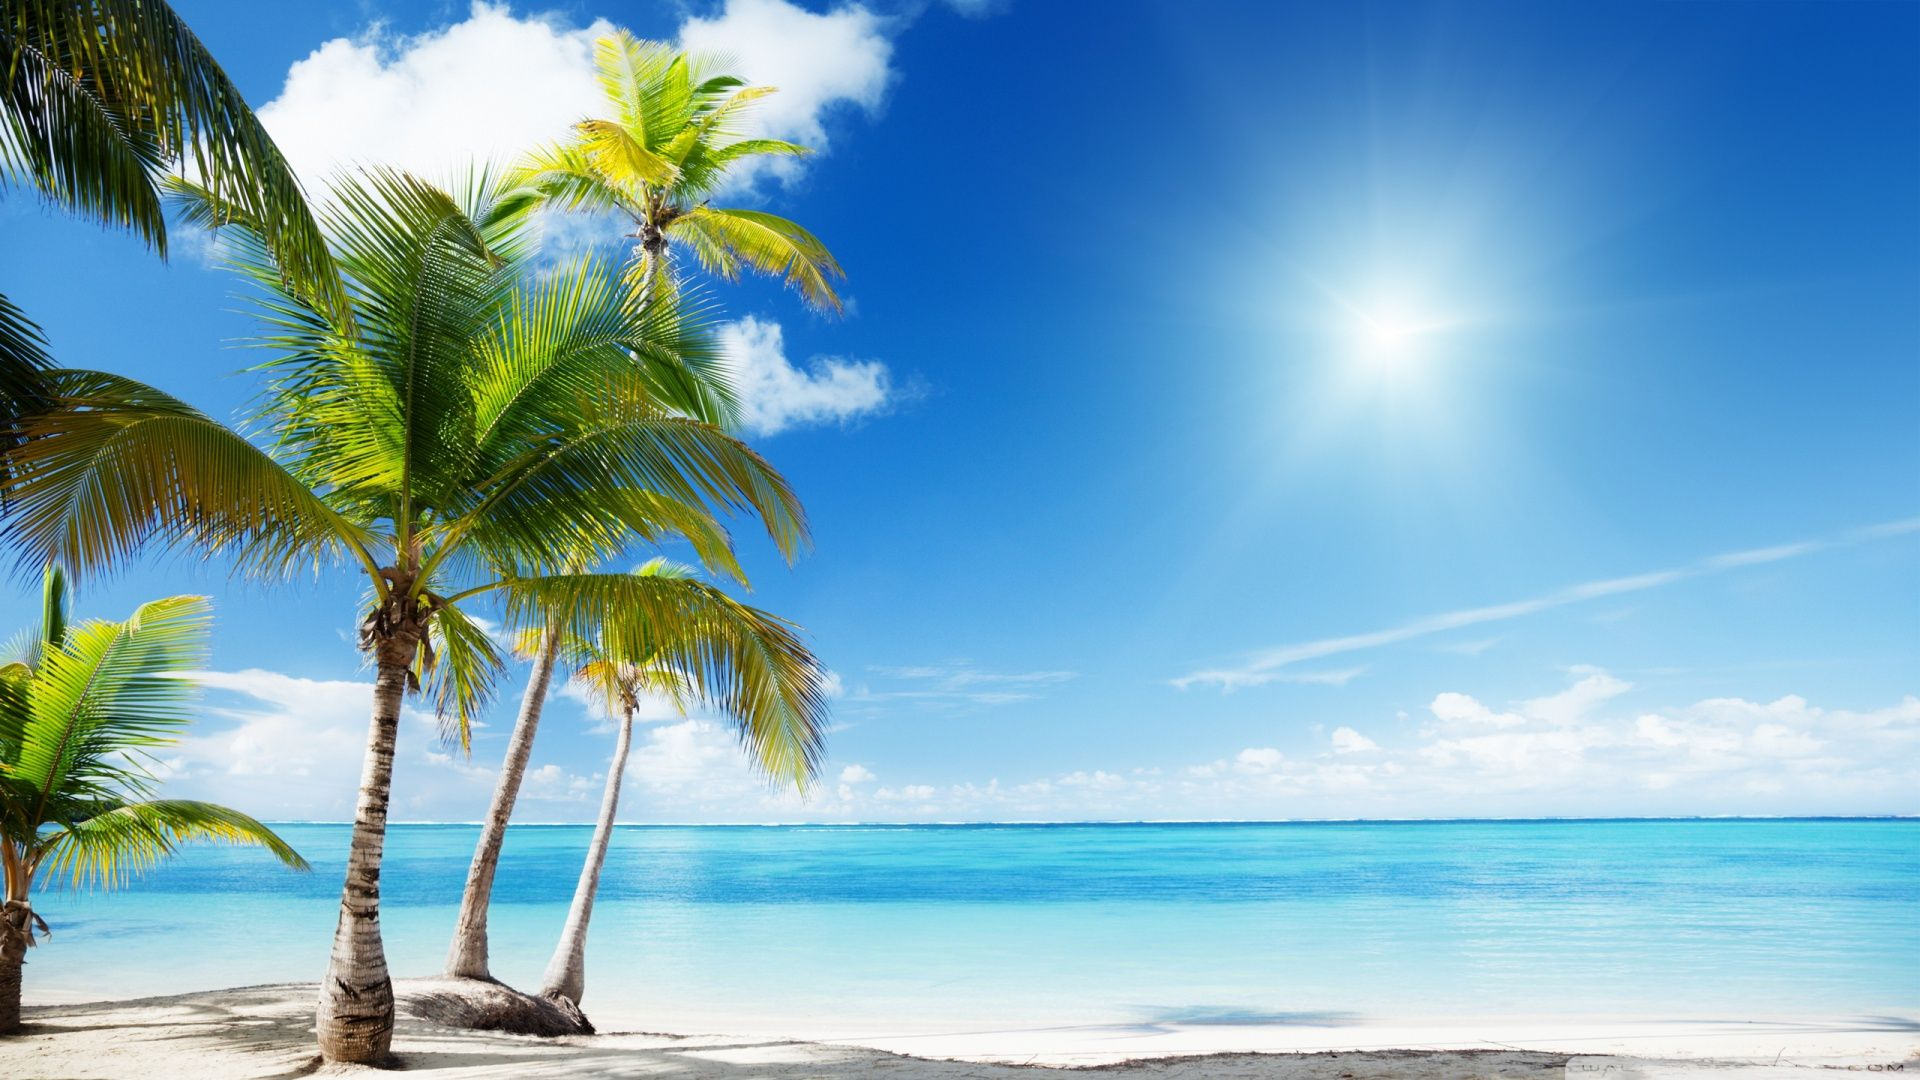 Tropical Beach Paradise HD Desktop Wallpaper : Widescreen : High